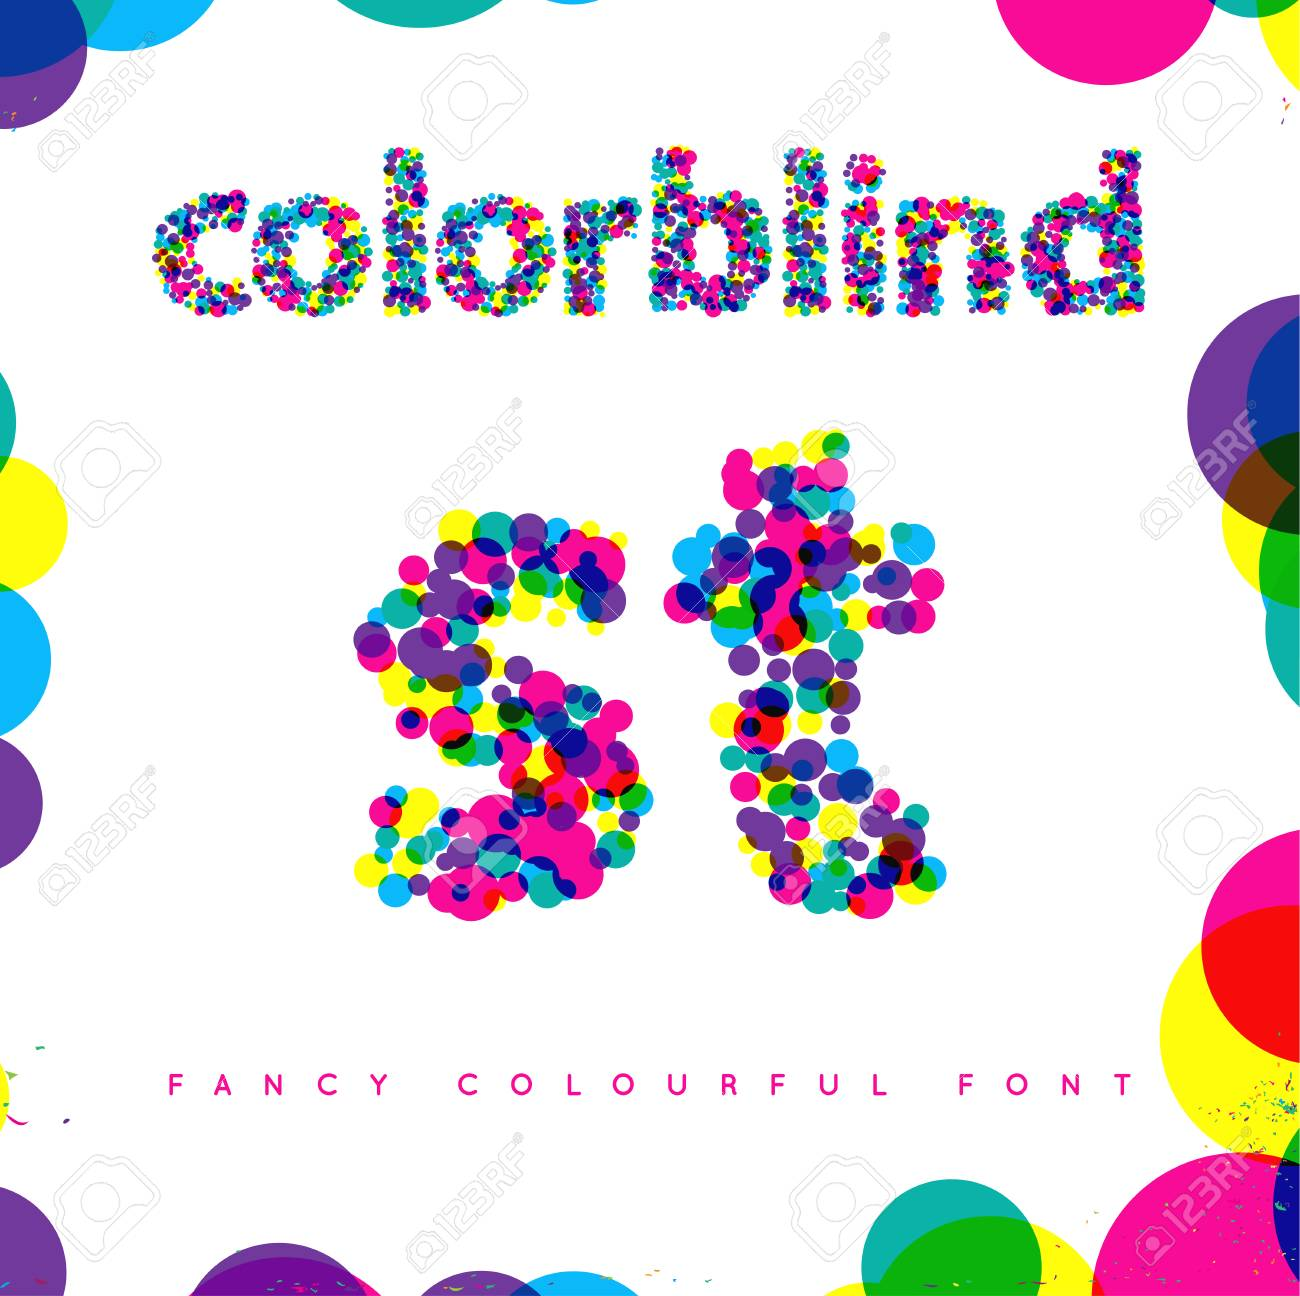 Set of Colorblind Style Font in Vector. Fresh trendy colors. - 63656531